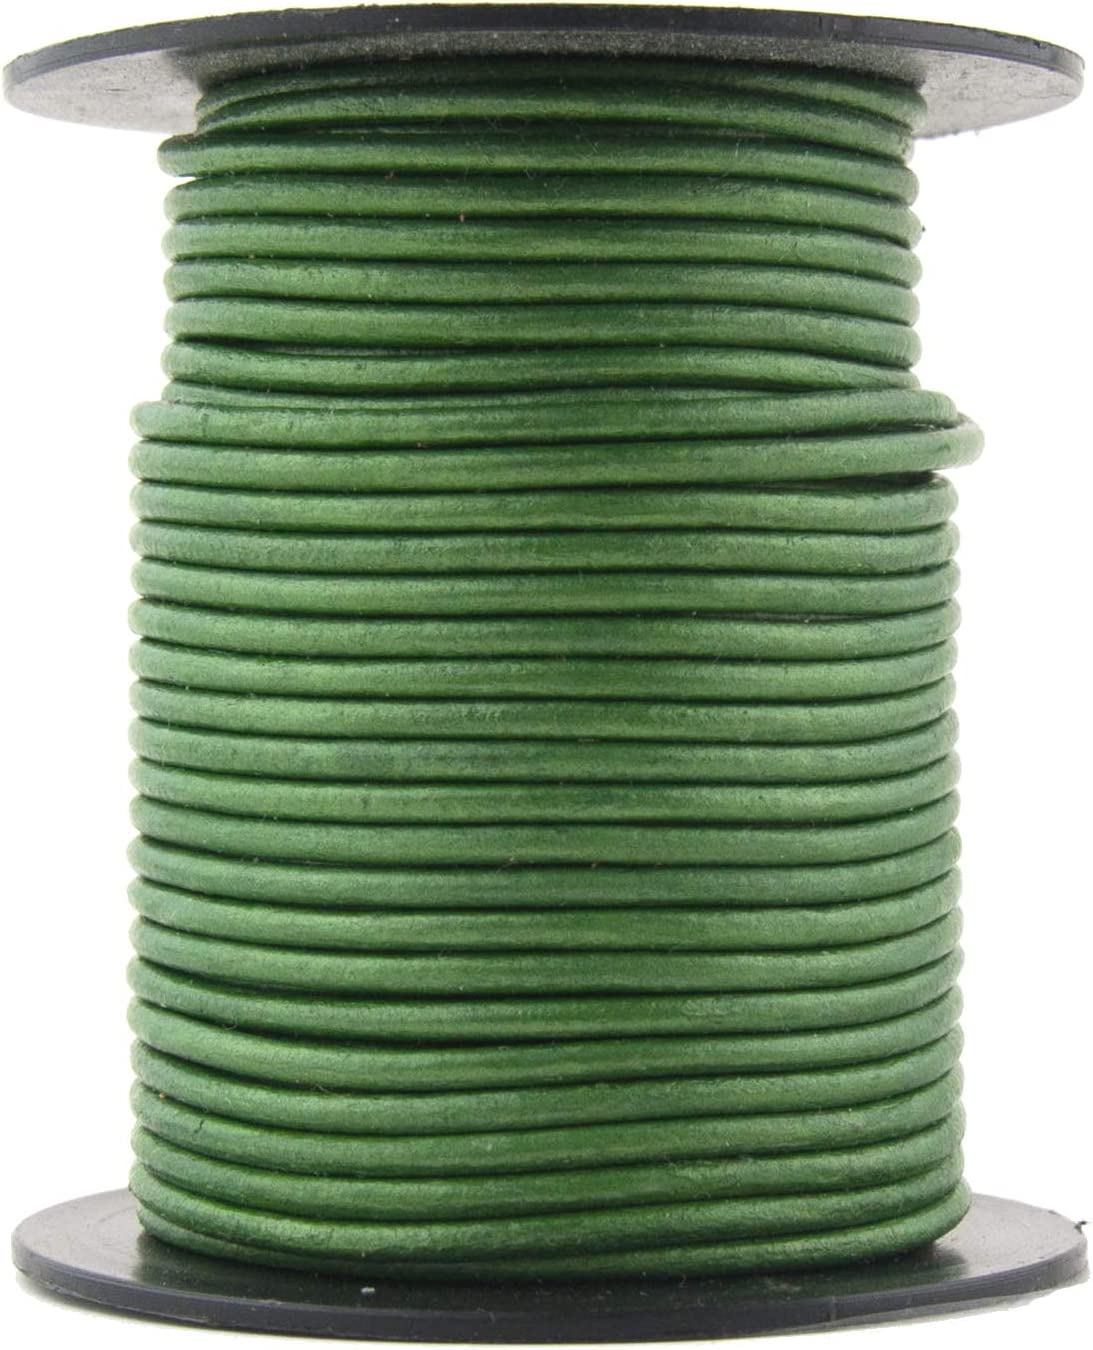 Mint, 10.0 Meter Xsotica Metallic Round Leather Cords-1.5 MM Cord 10 Yard